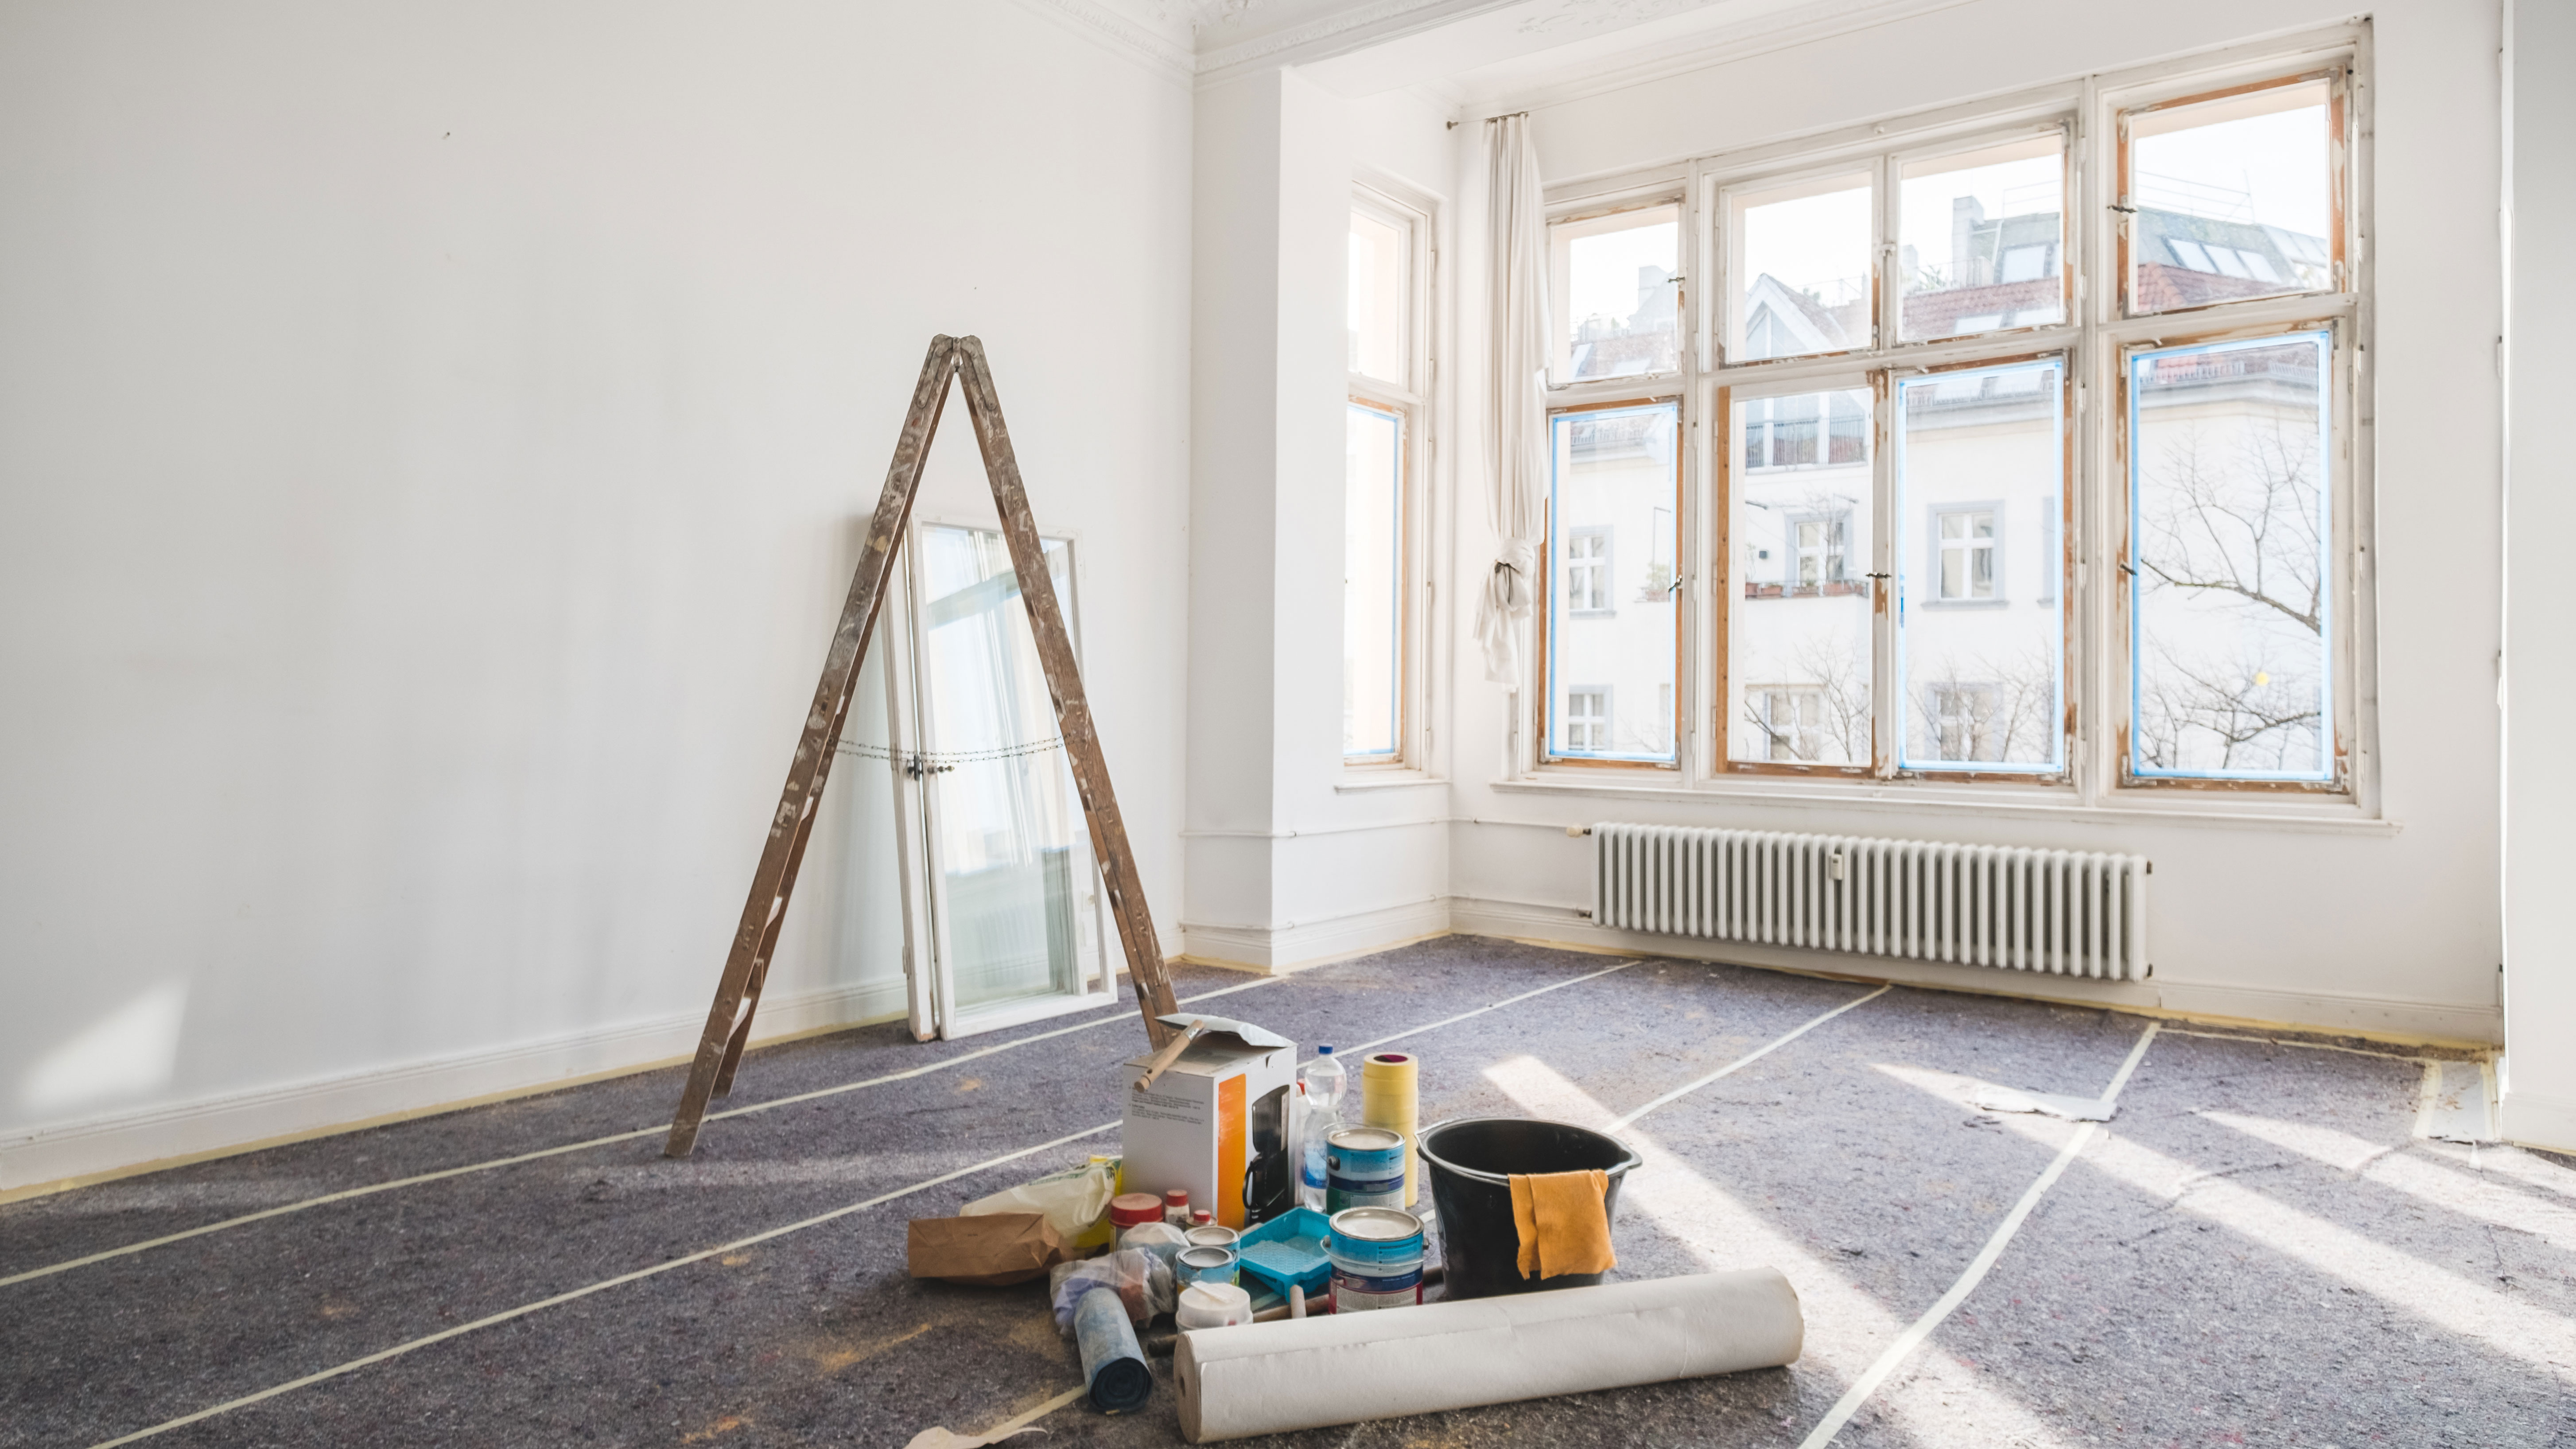 living on site while renovating: 22 top tips | real homes